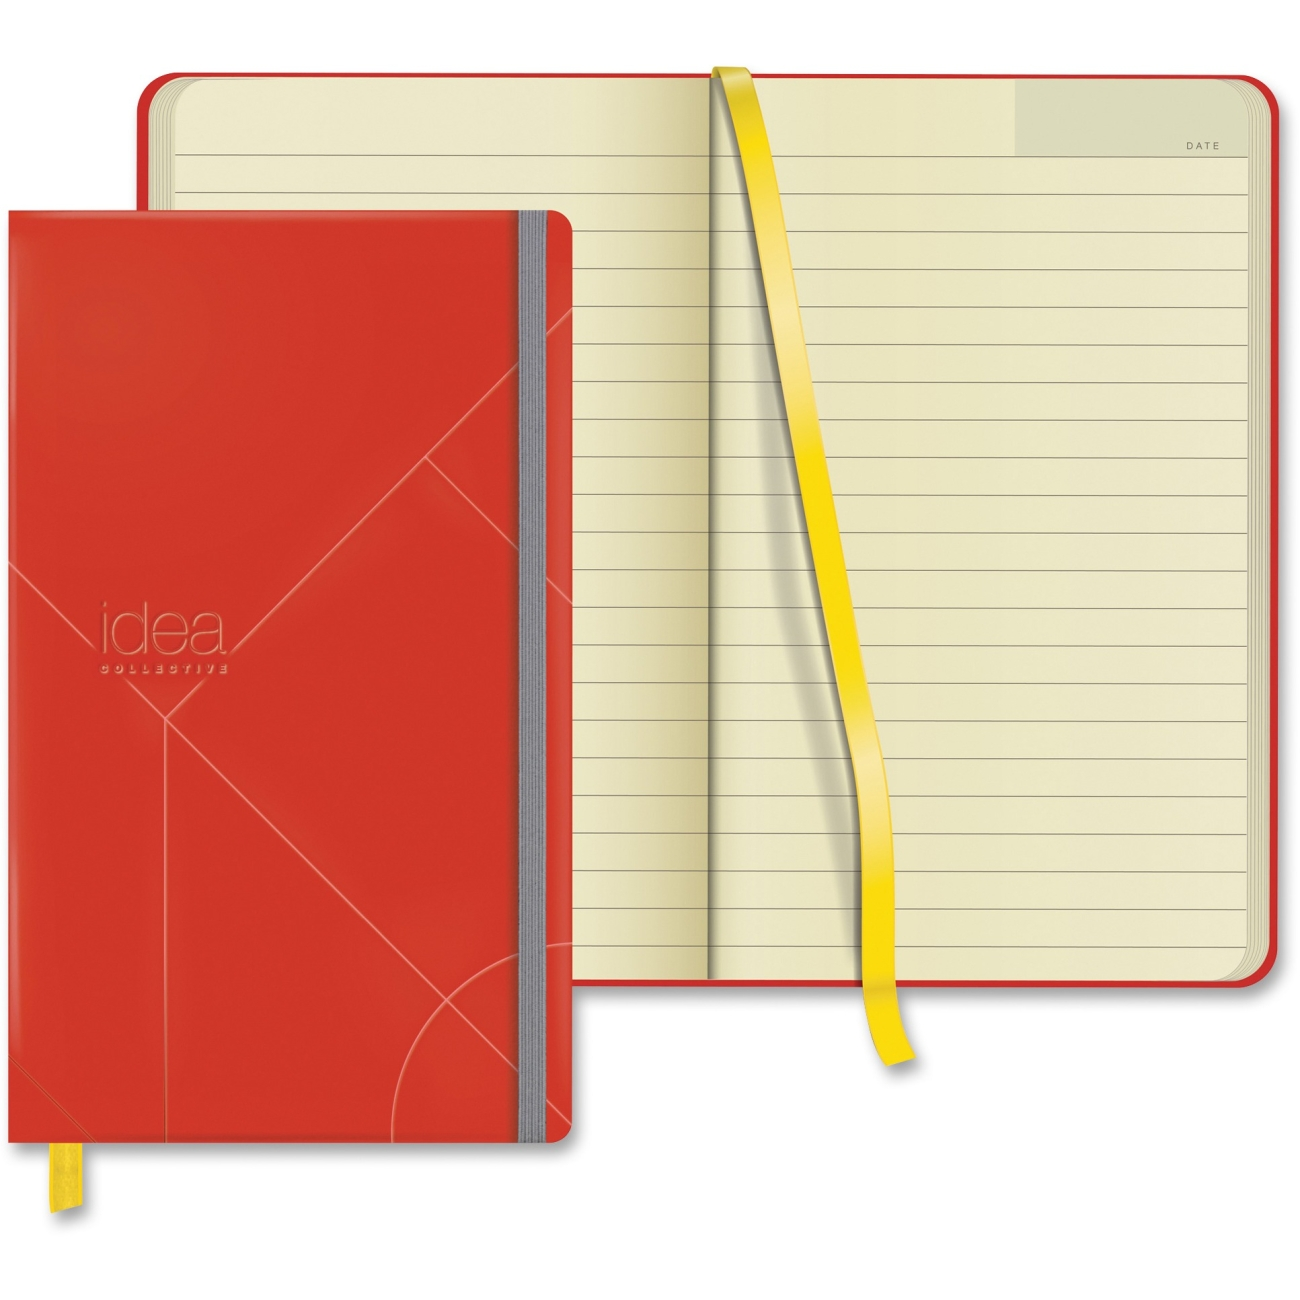 """Tops Idea Collective Medium Hardbound Journal, Wide Rule, Red - 120 Sheet - 80 G/m - Wide Ruled - 5"""" X 8.25"""" - 1 / Each - Cream Paper Red Cover (top-56873)"""